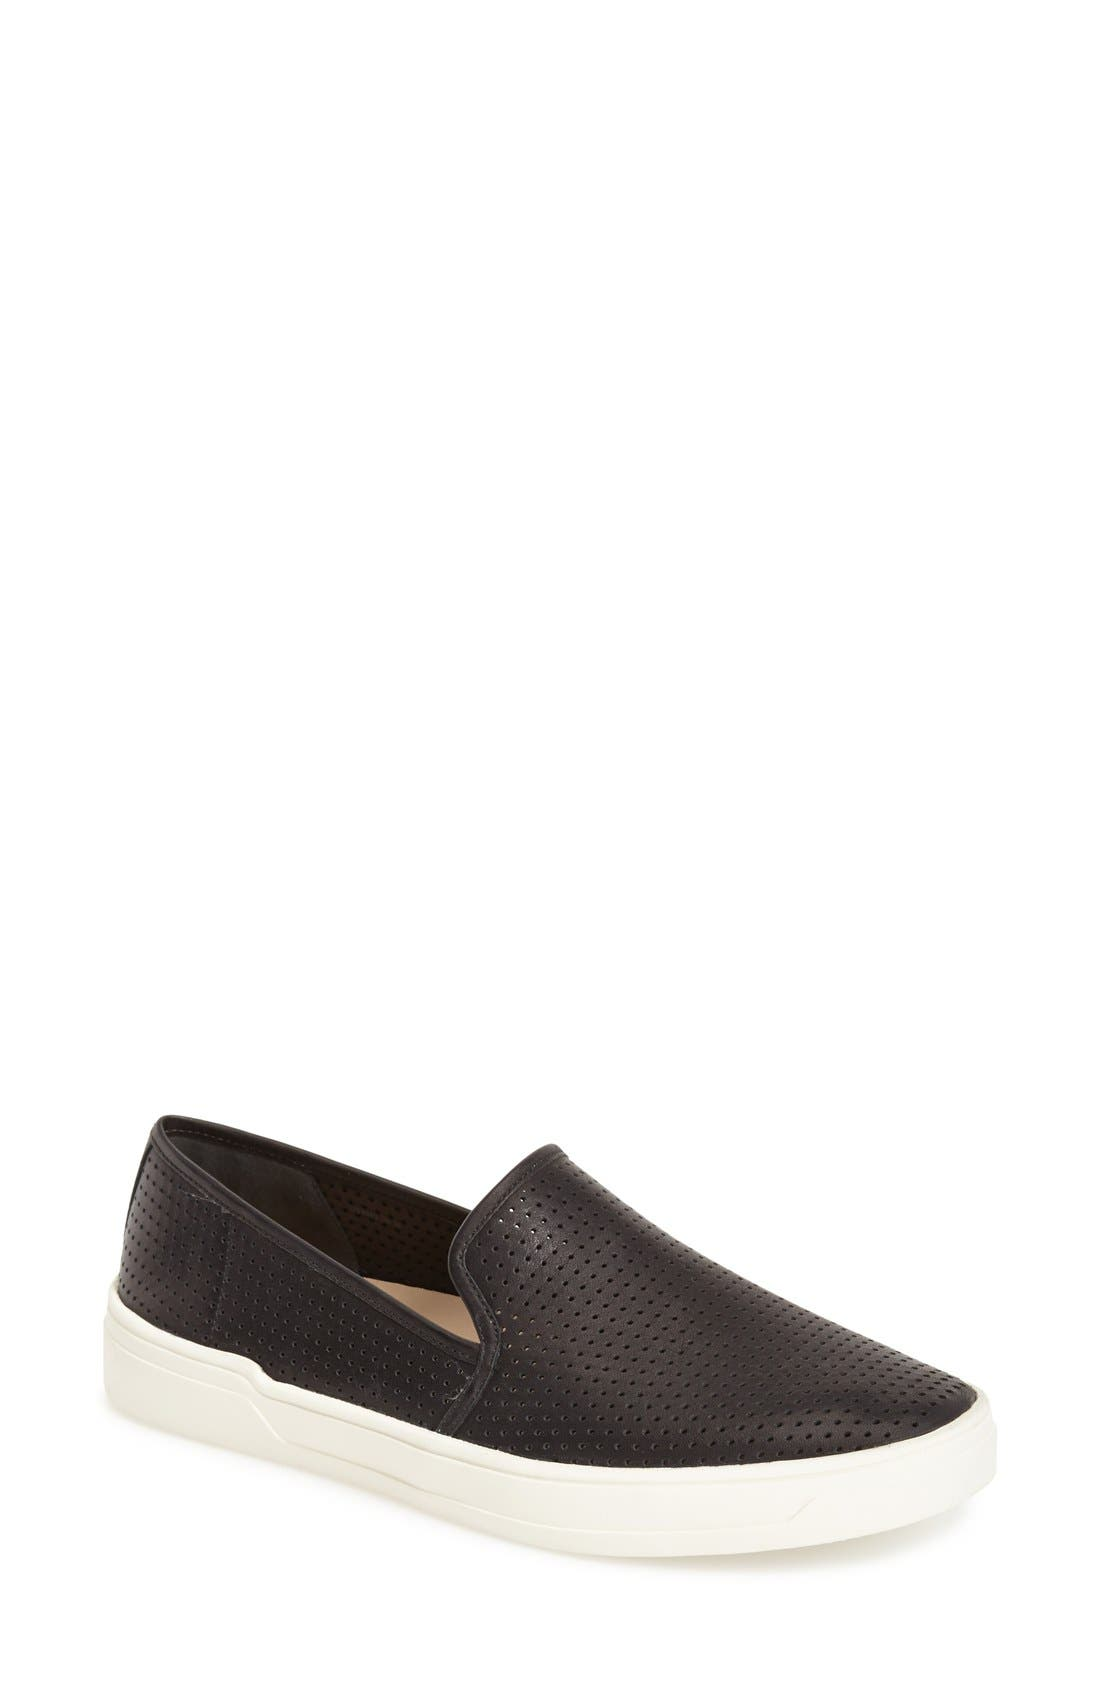 Alternate Image 1 Selected - Via Spiga 'Galea' Leather Slip-On Sneaker (Women)